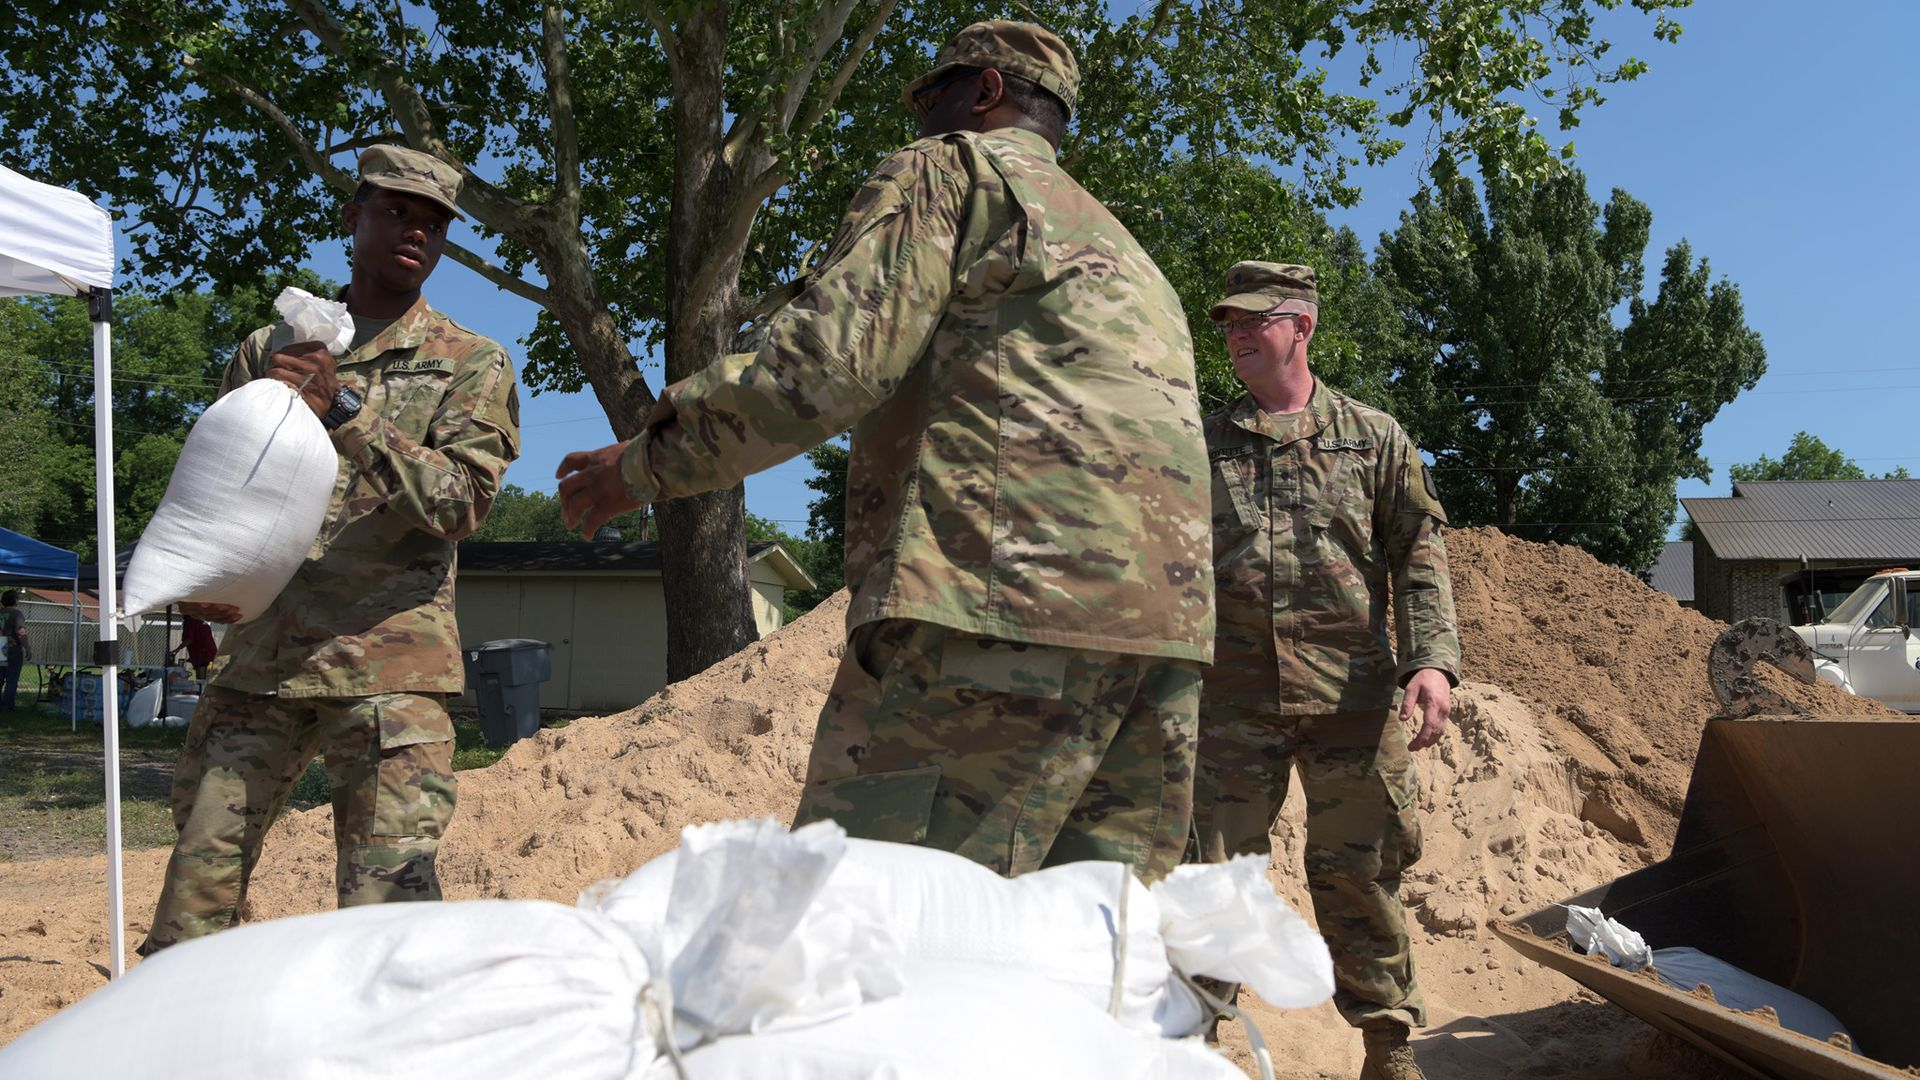 Arkansas National Guard Soldiers assist the U.S. Army Corps of Engineers and the city of Dardanelle, Arkansas, fill and load sandbags in preparation for flood waters near the city.